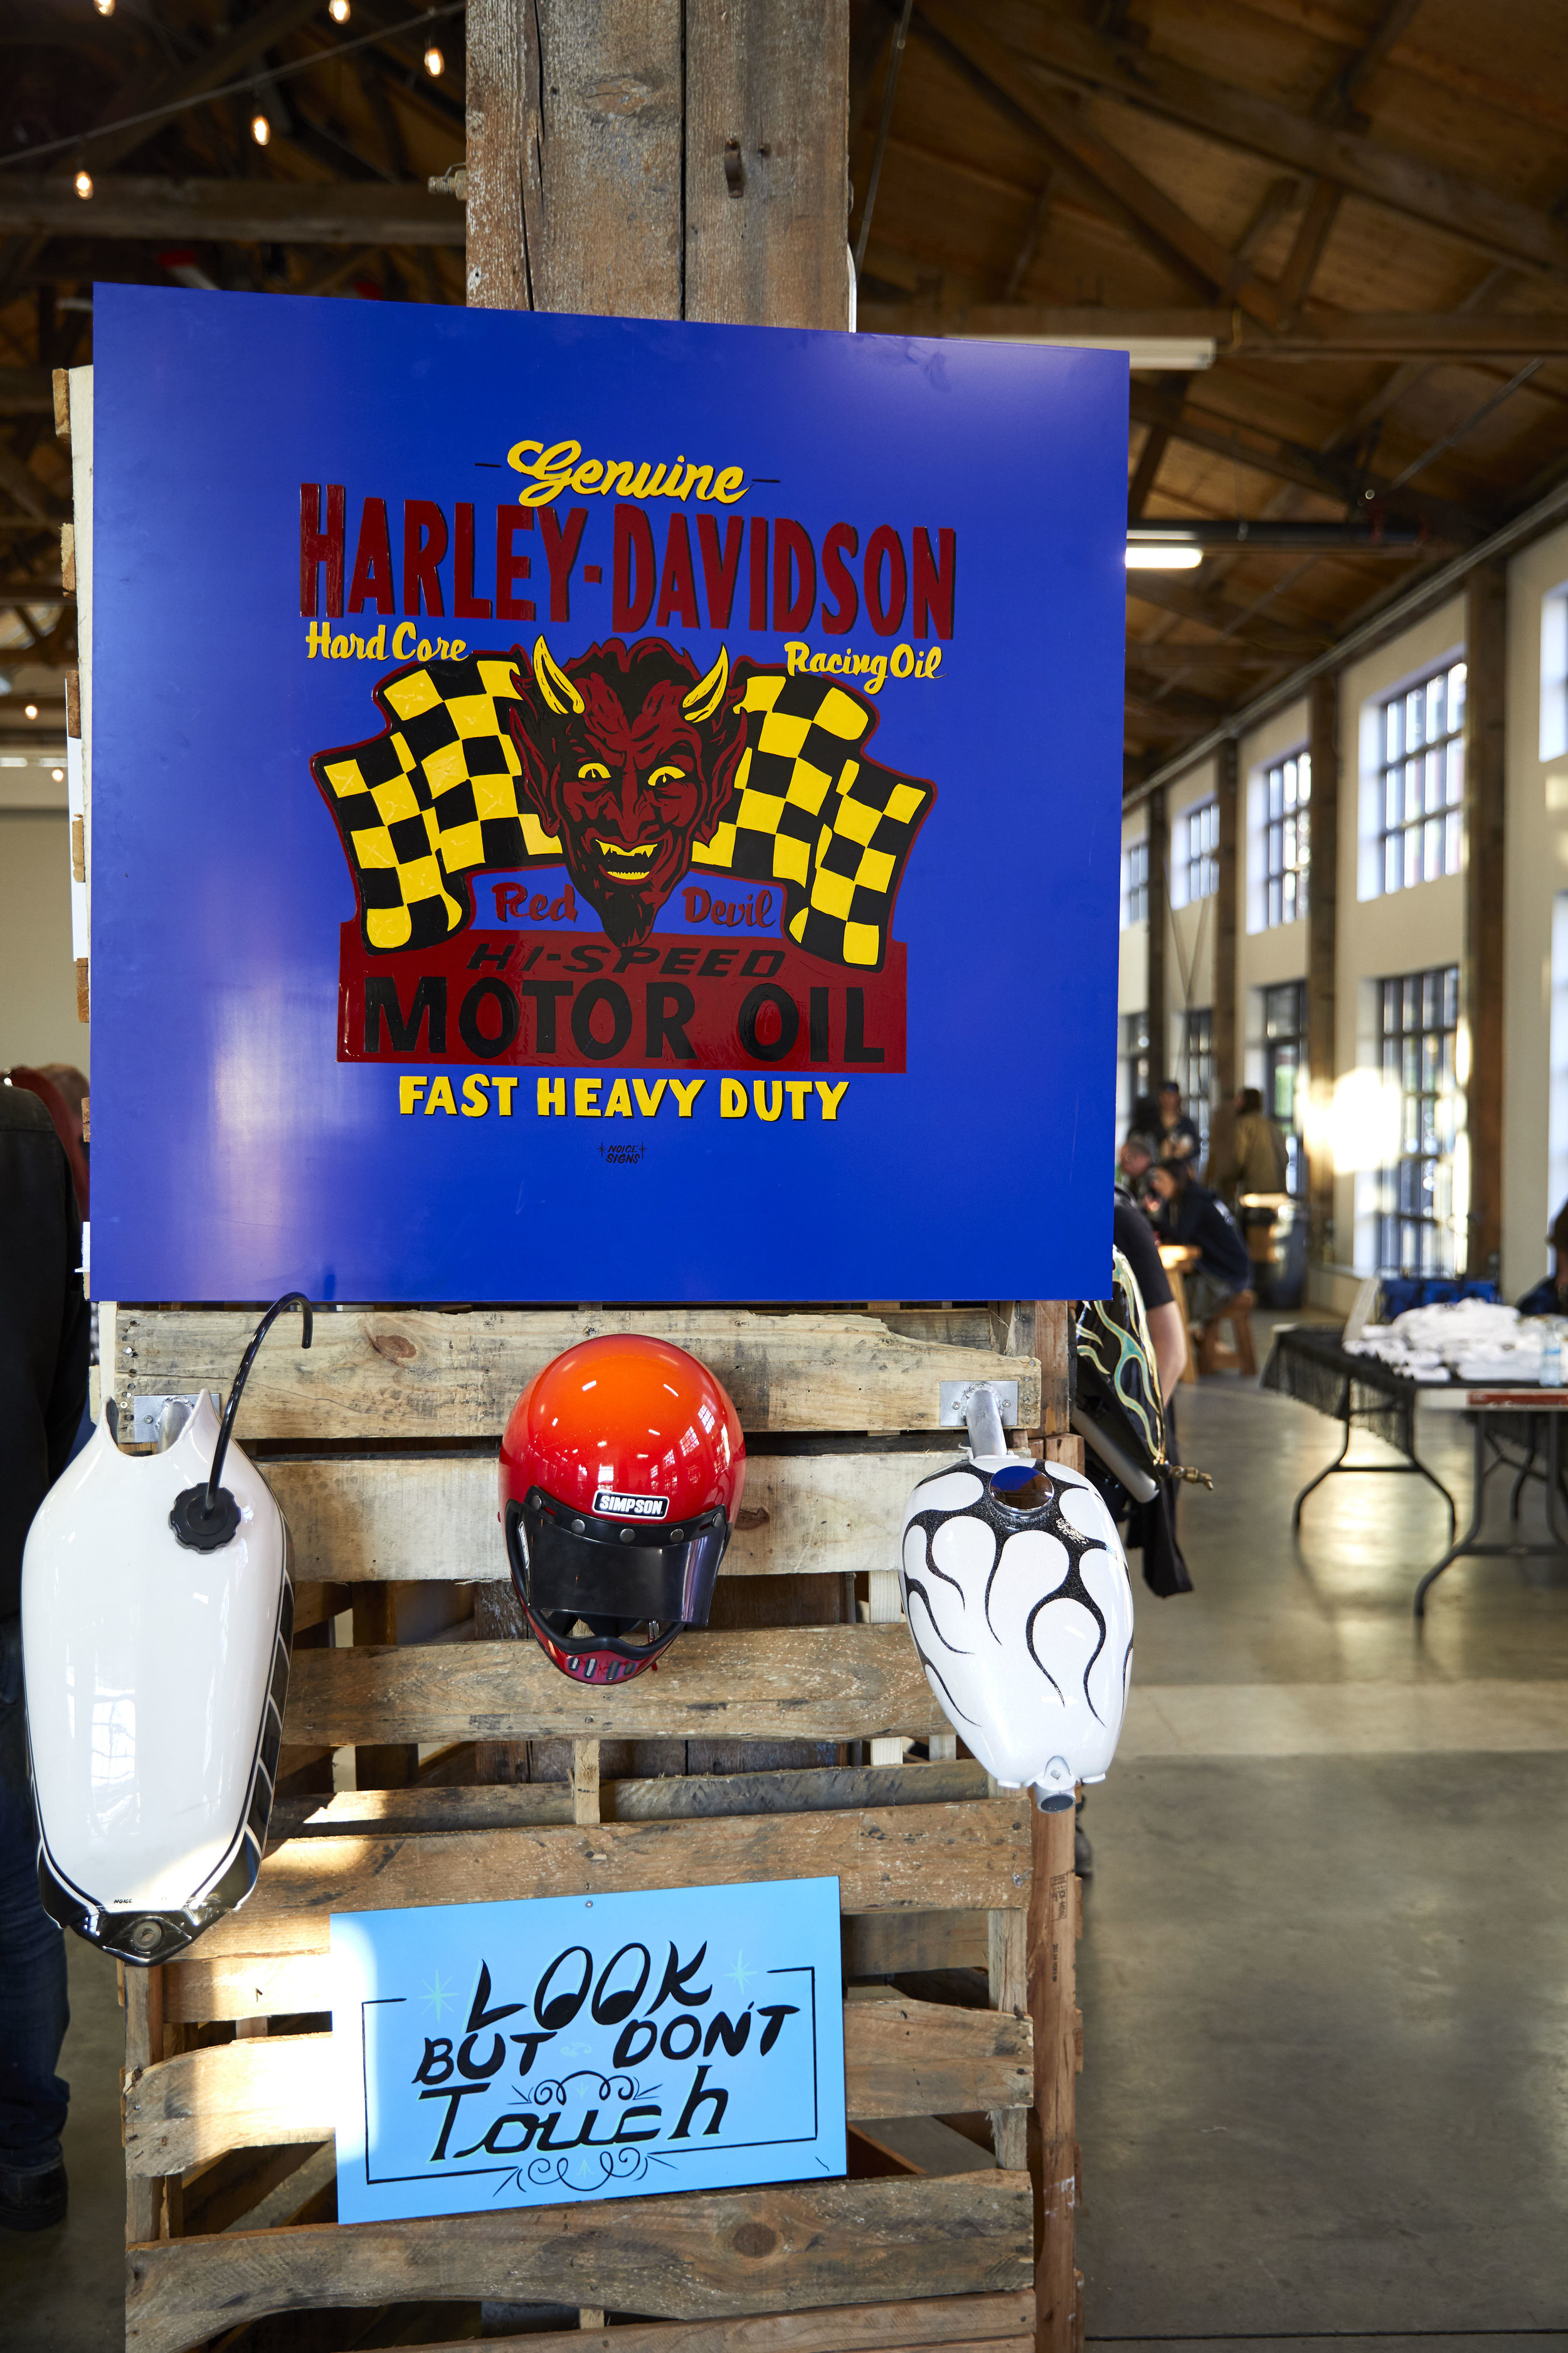 LOSERPALOOZA 2018 MOTORCYCLE SHOW